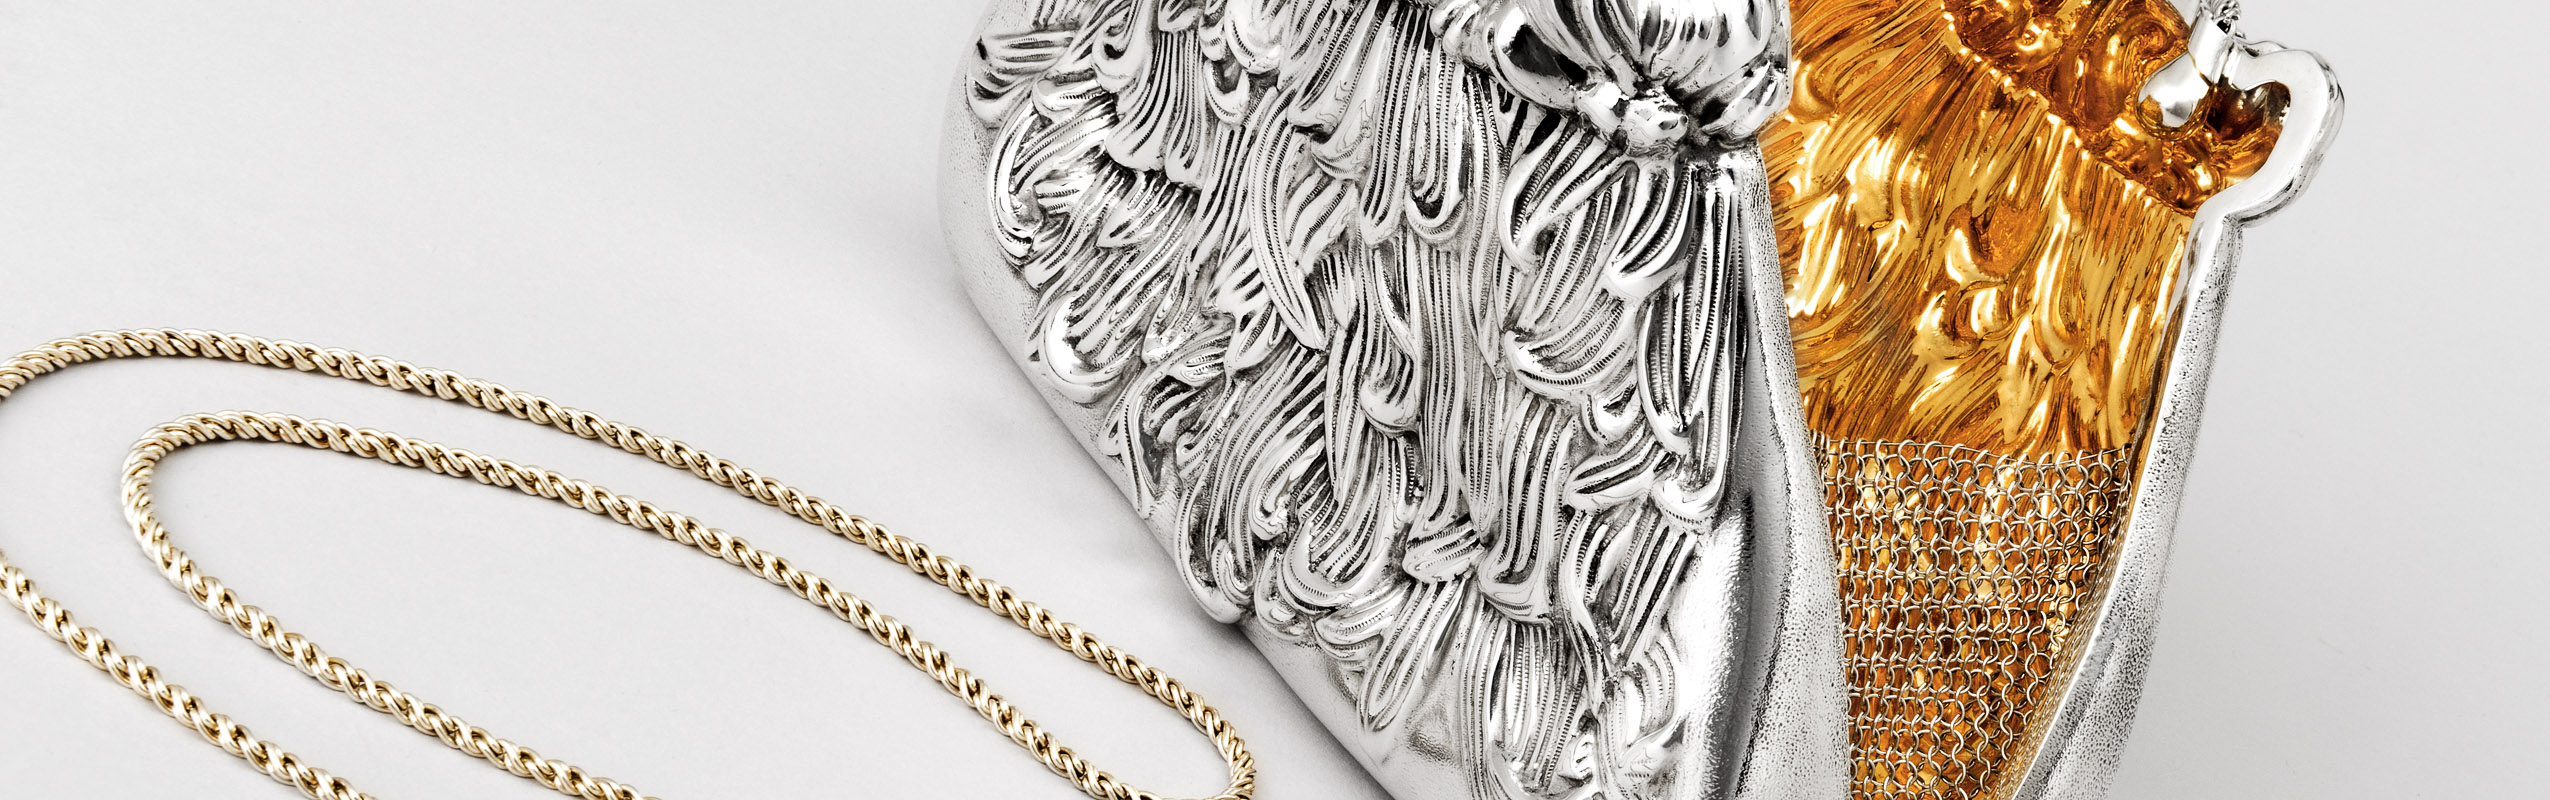 Photo of a sterling silver and 24K gold evening purse  by Michael Galmer.